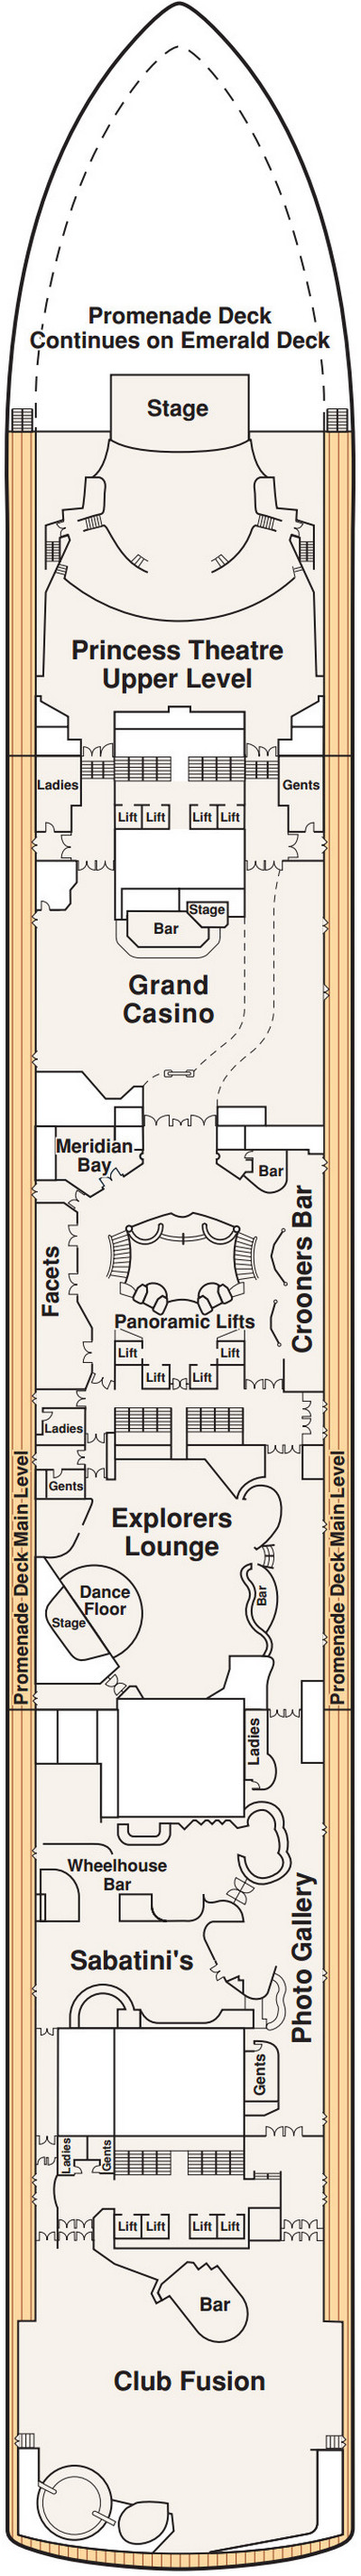 Caribbean Princess Promenade Deck 7 layout